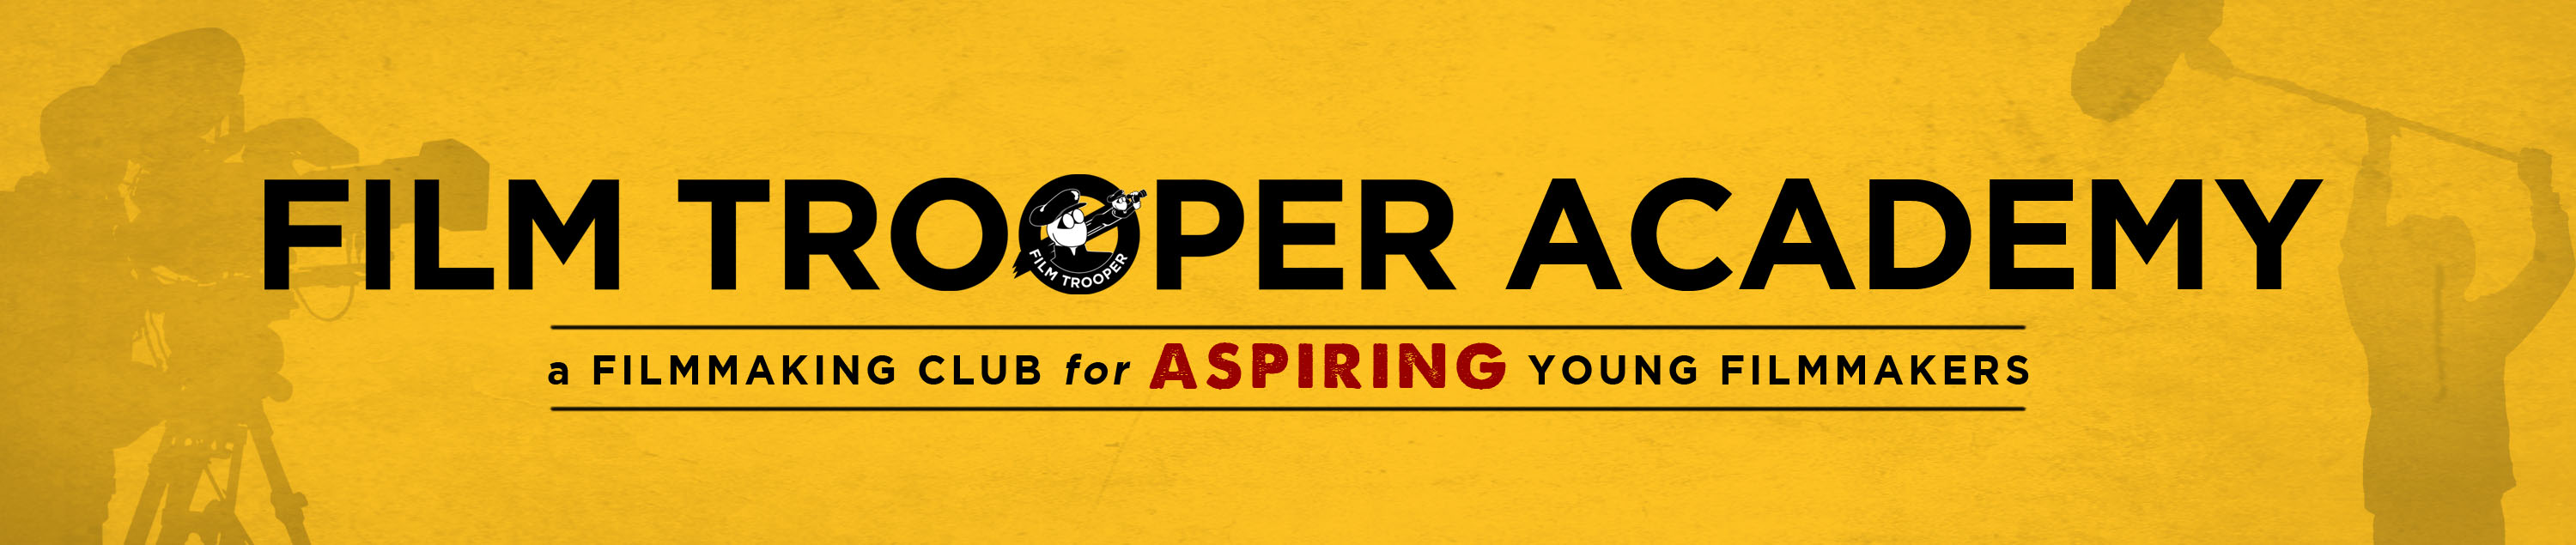 Film Trooper Academy, a filmmaking club for aspiring young filmmakers